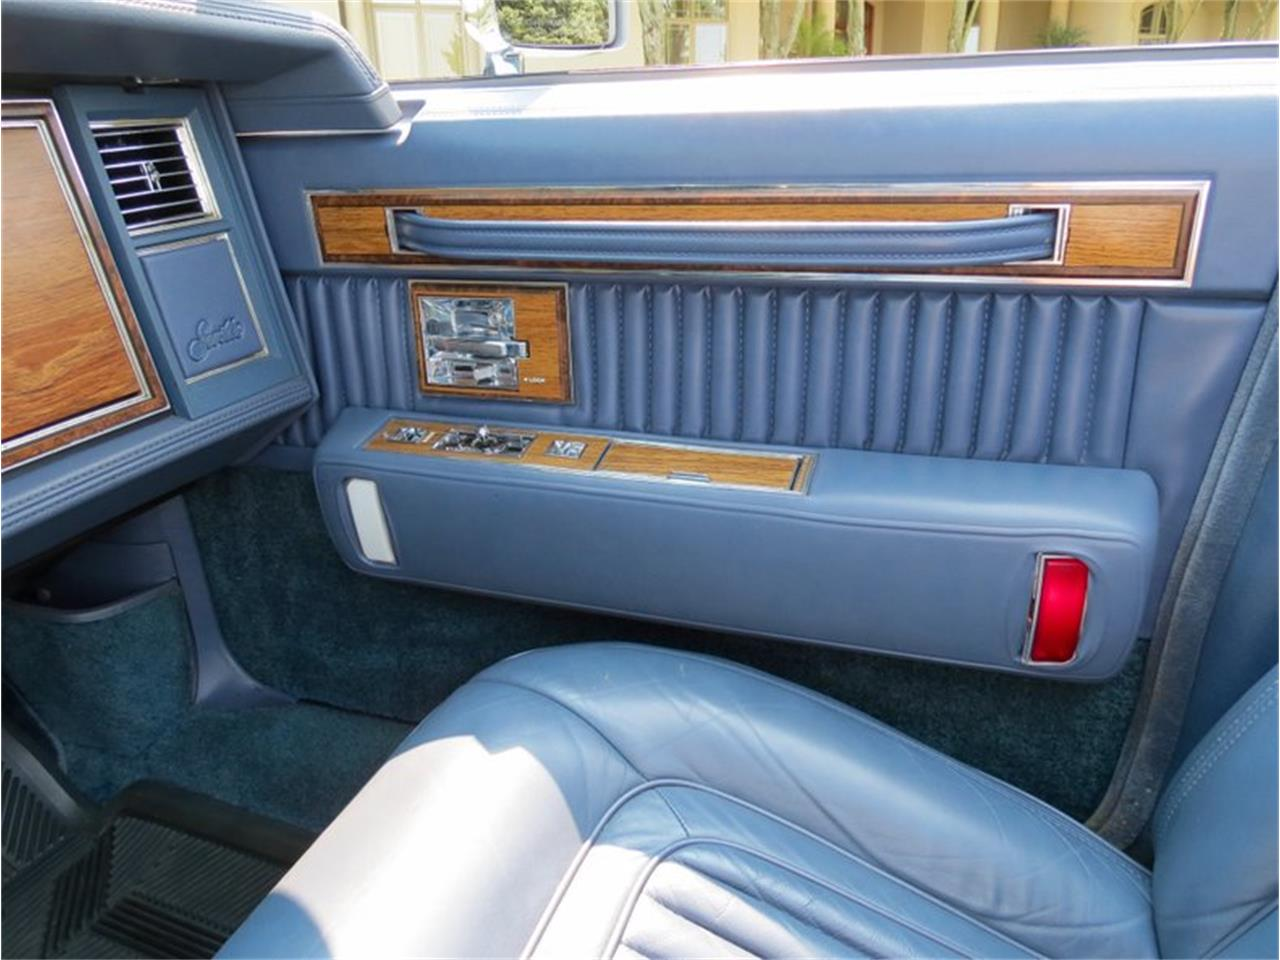 1983 Cadillac Seville for sale in Dayton, OH – photo 26